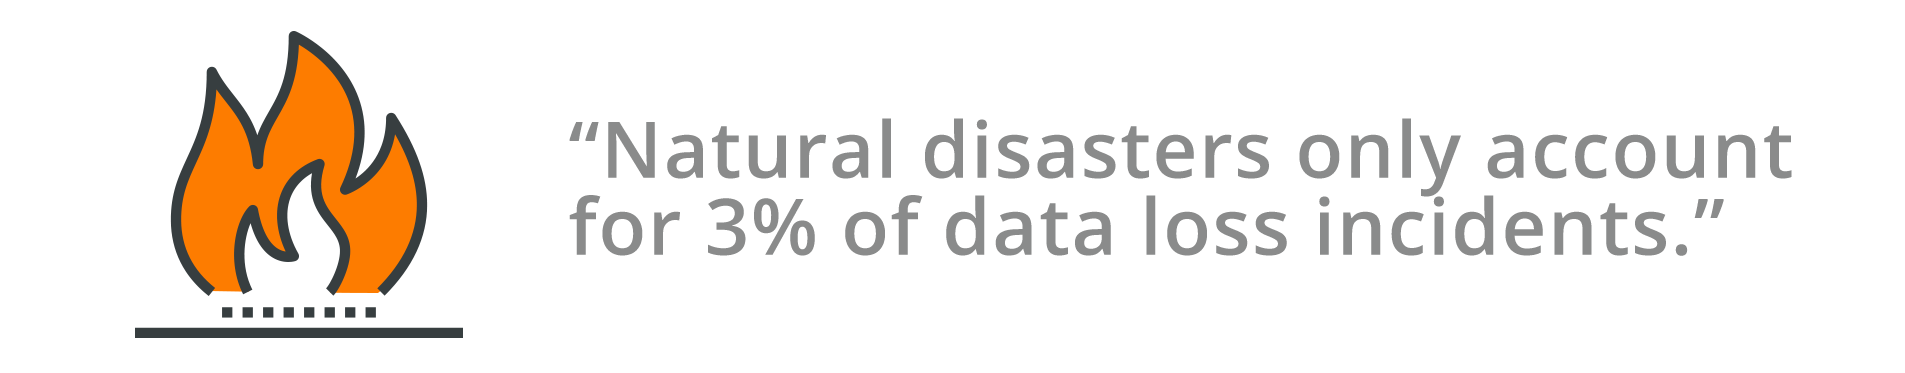 natural disaster stat